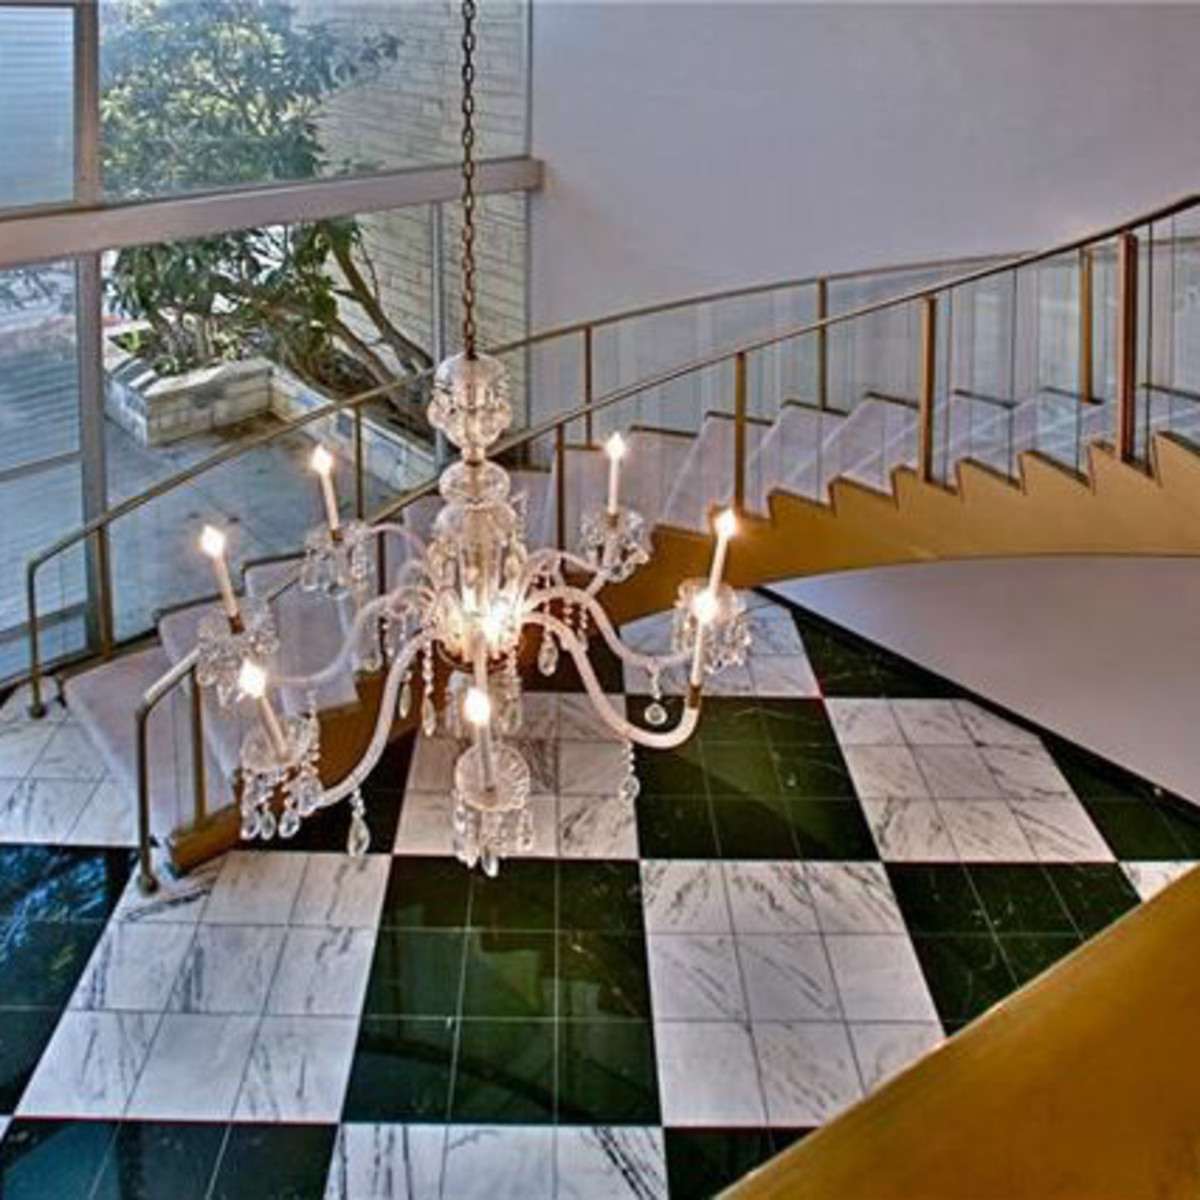 Foyer of Mayrath House